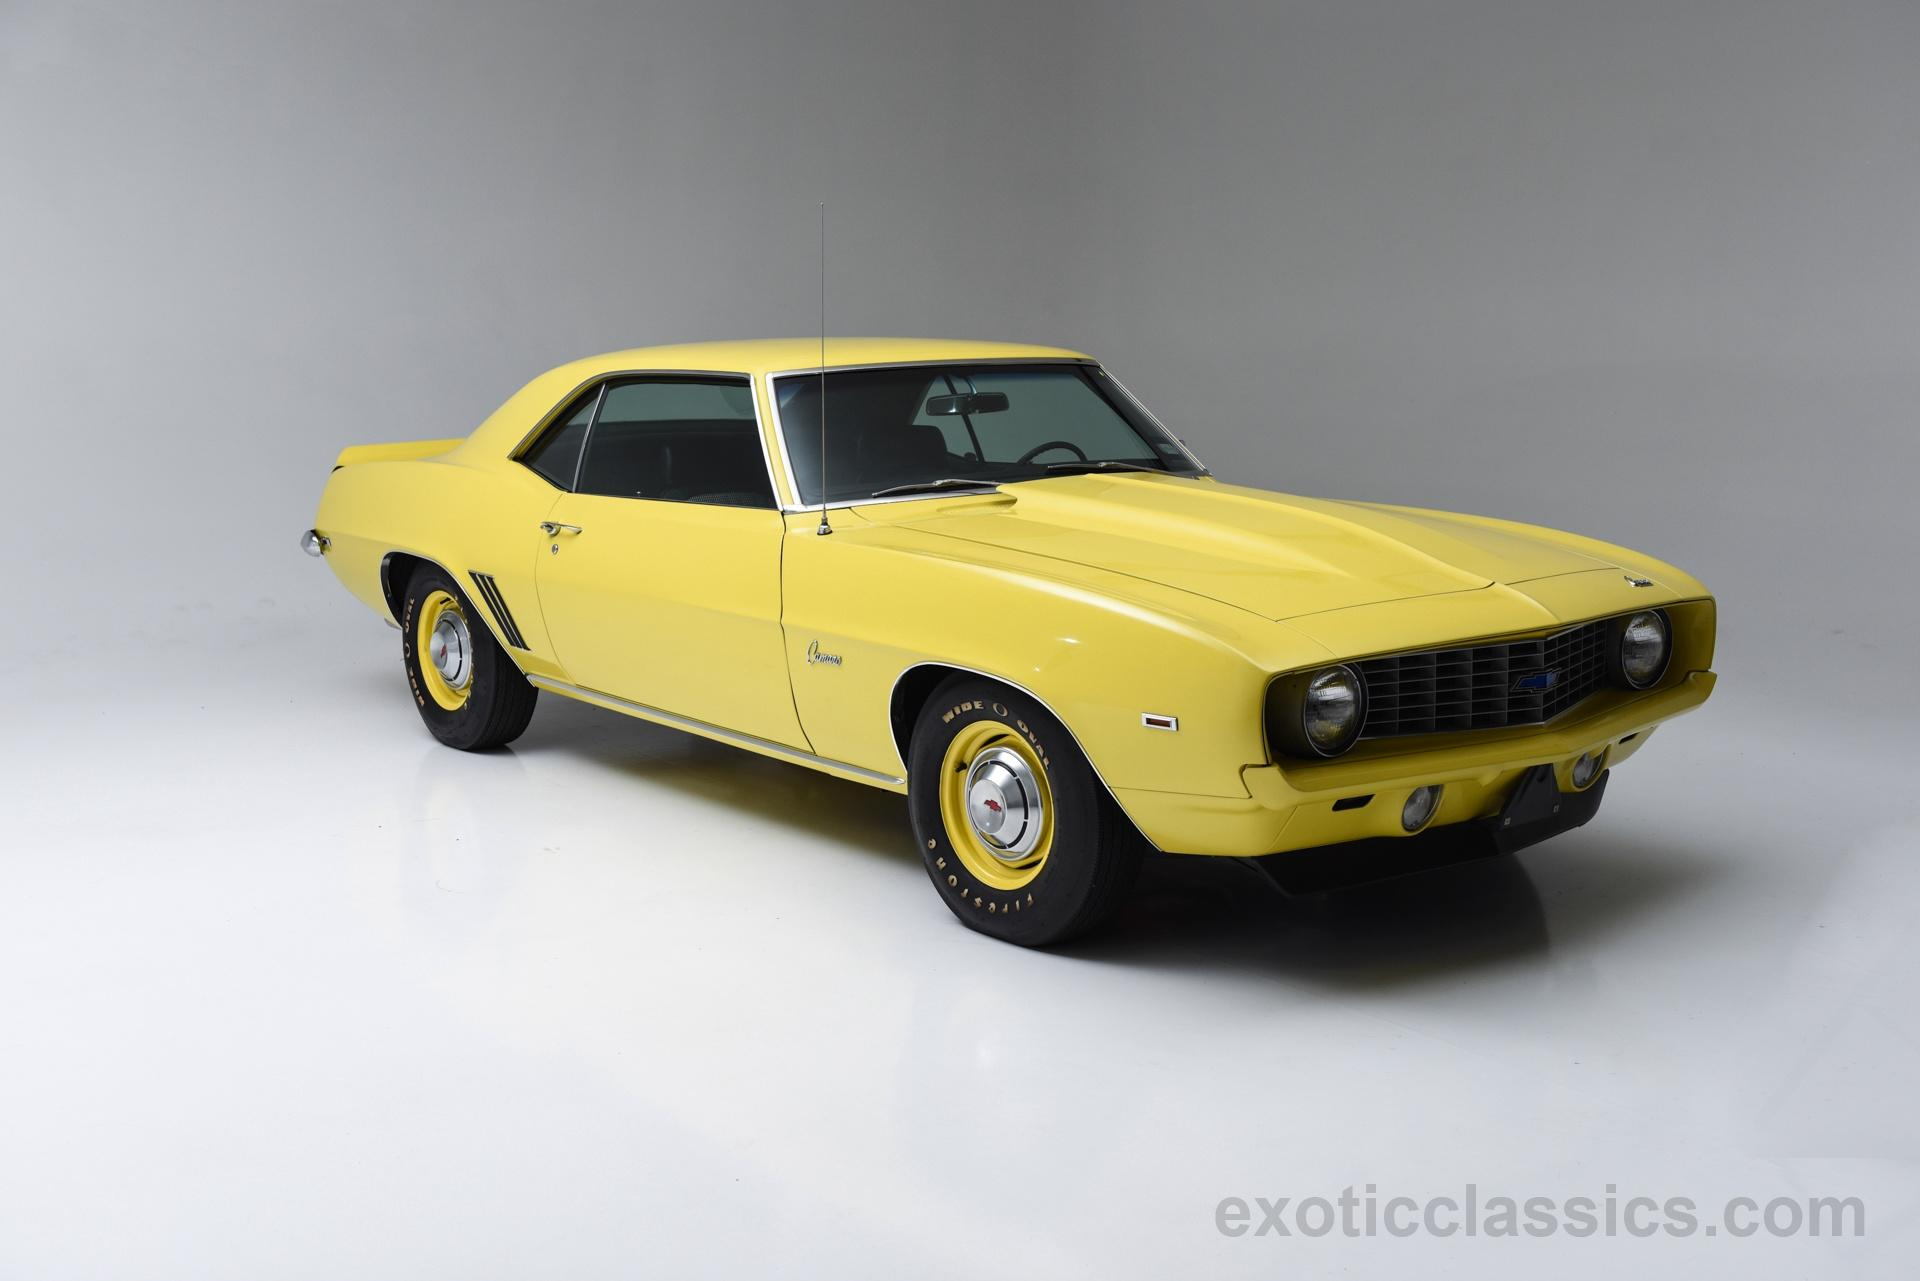 1969 chevrolet camaro copo tribute - exotic classic car dealership